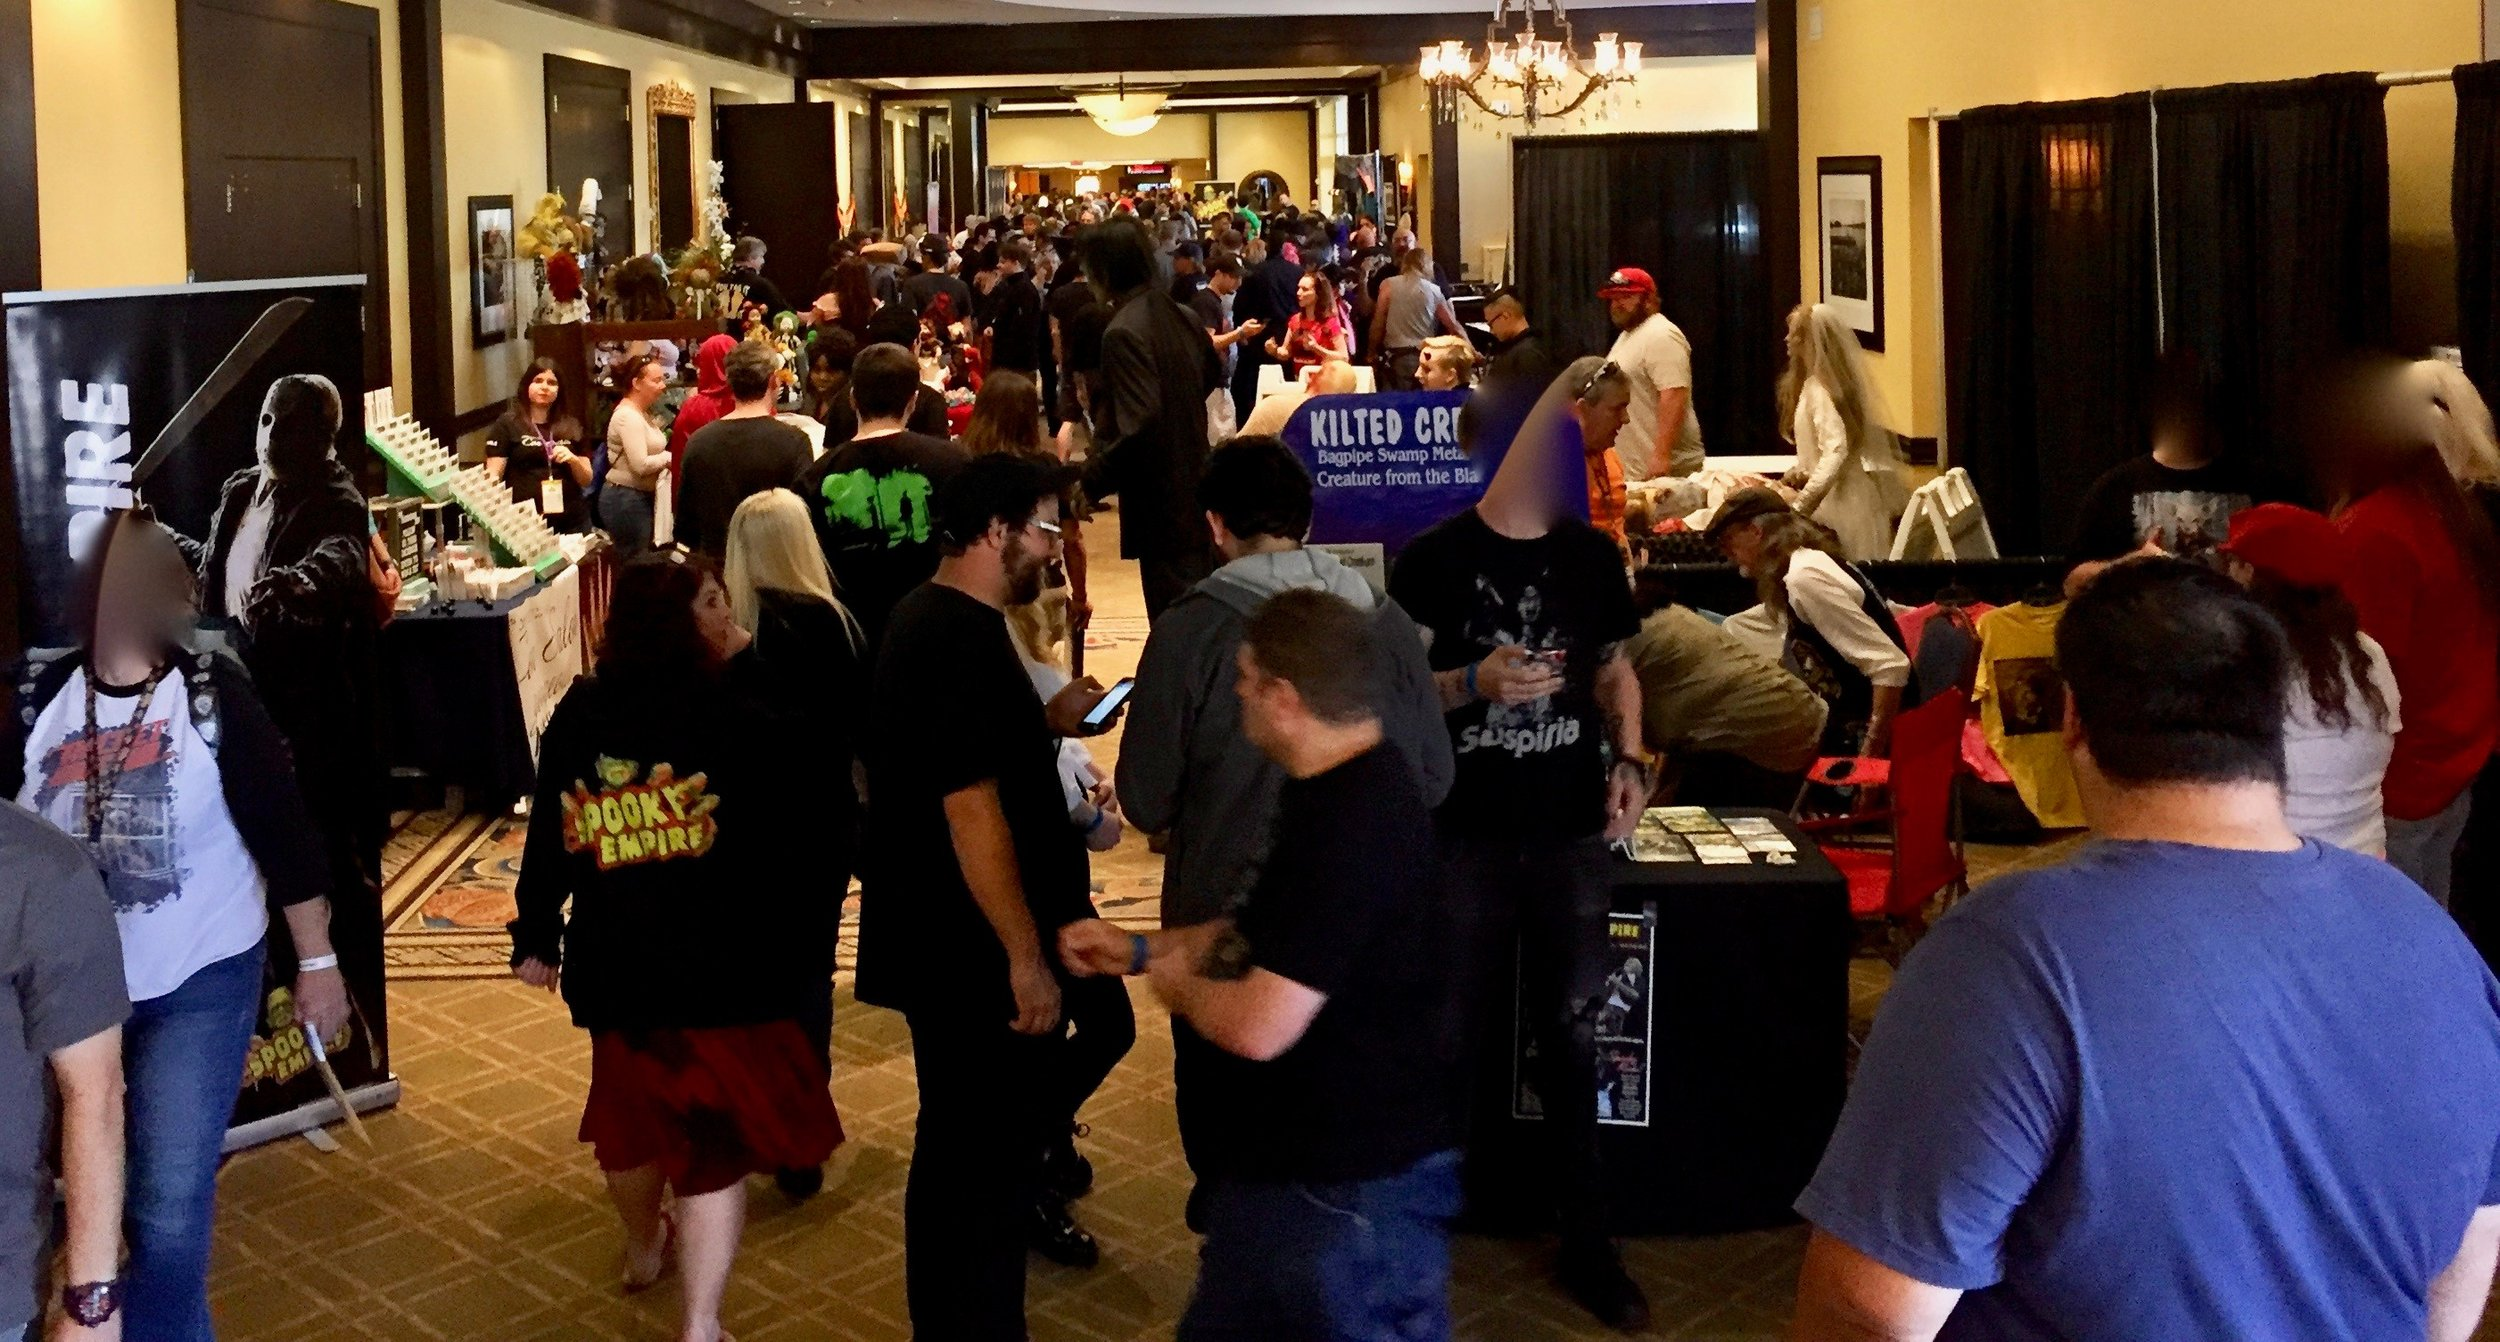 Crowded hallways as far as the eye can see? Must be Saturday at Spooky Empire!